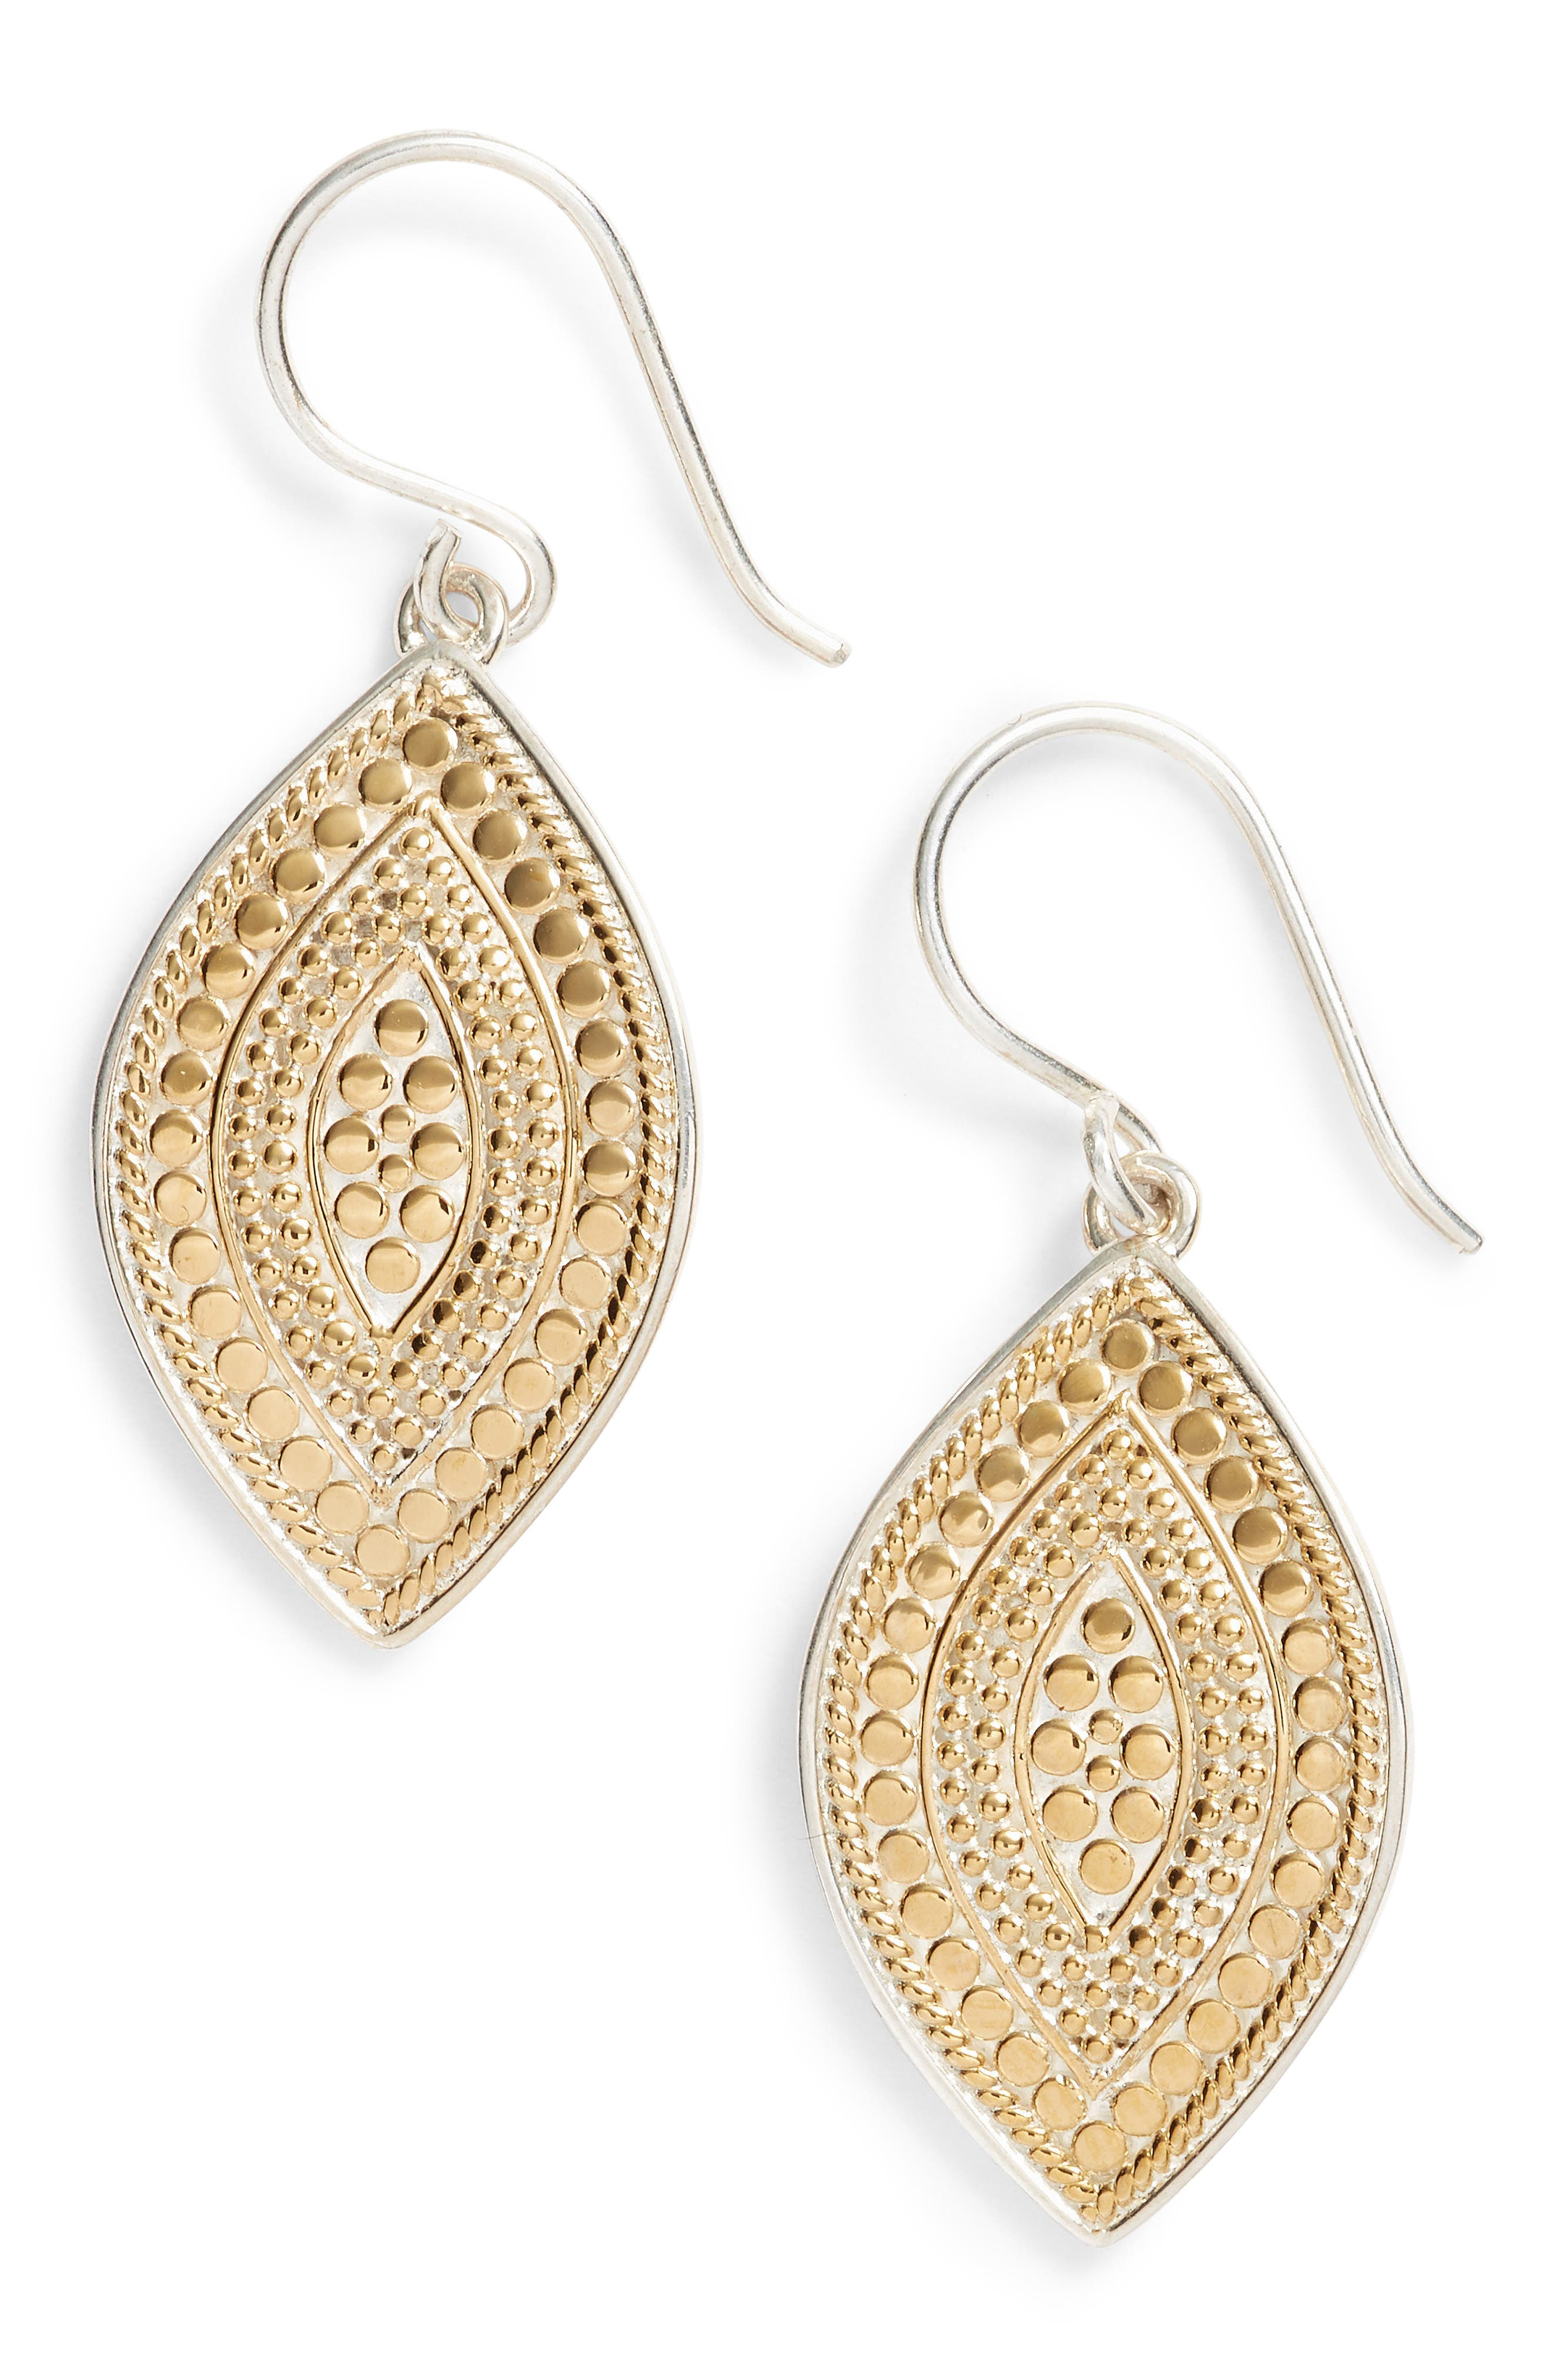 Drop Earrings,                         Main,                         color, Gold/ Silver